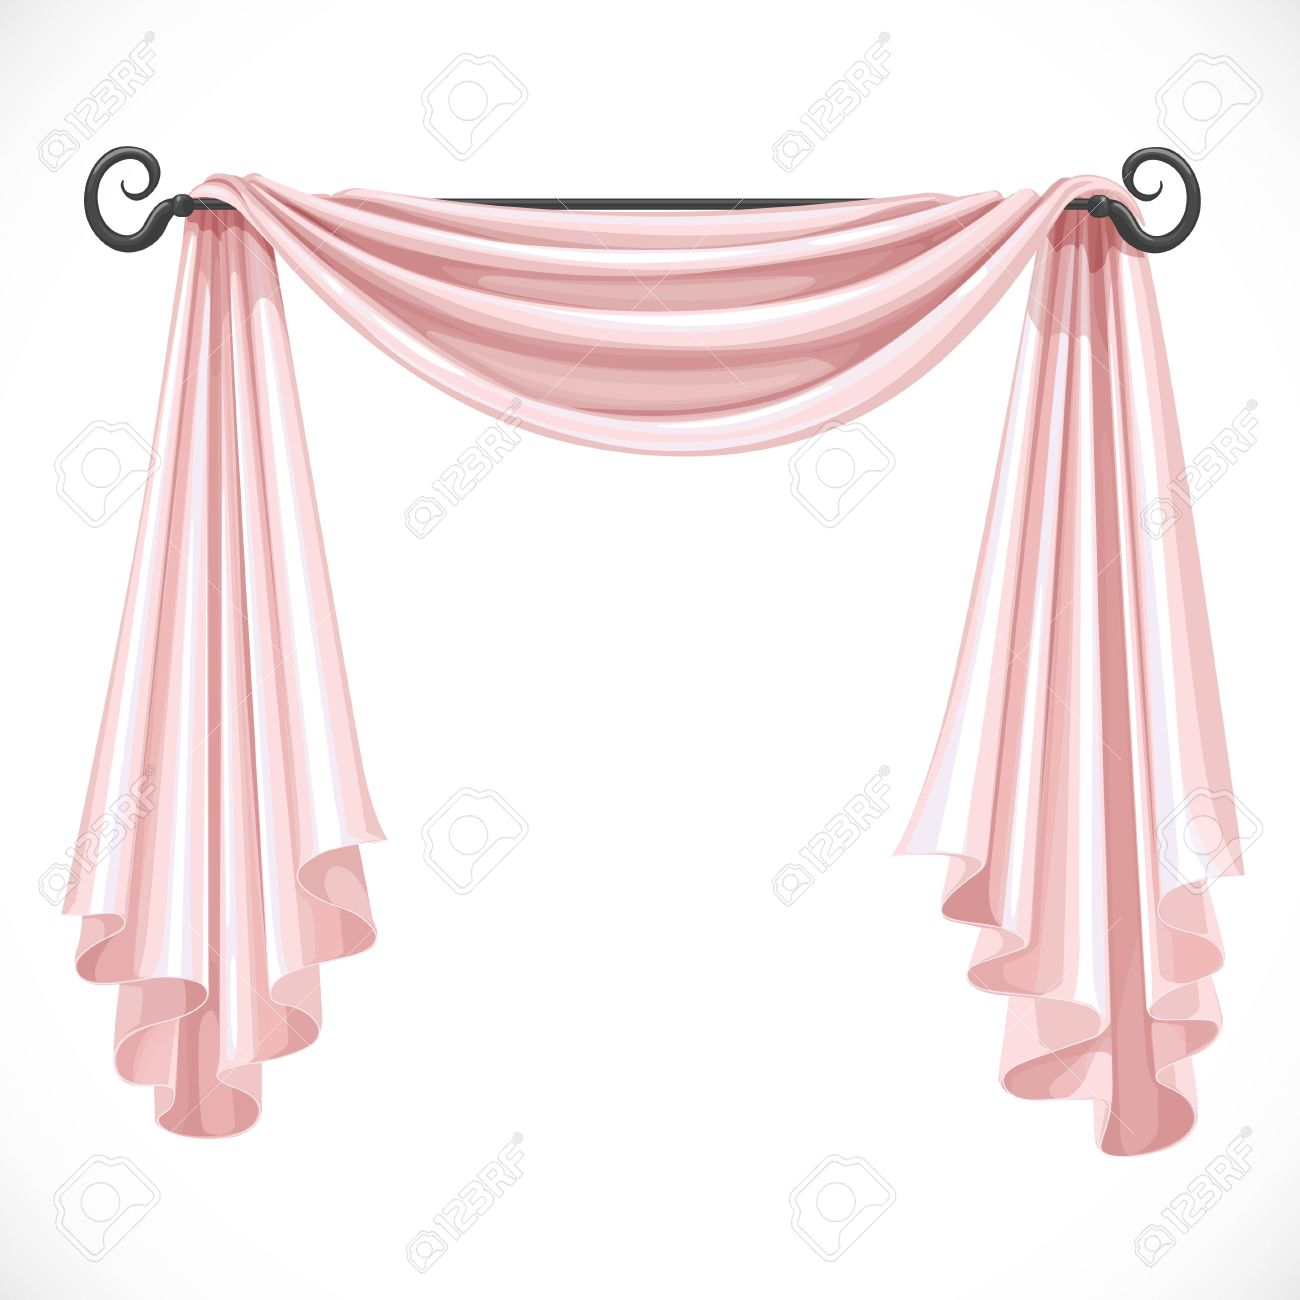 desk curtain curtains white wooden and for designs kids bedroom nightstand chrome beautiful lamp princess the pink thermal styles childrens girls metal blackout